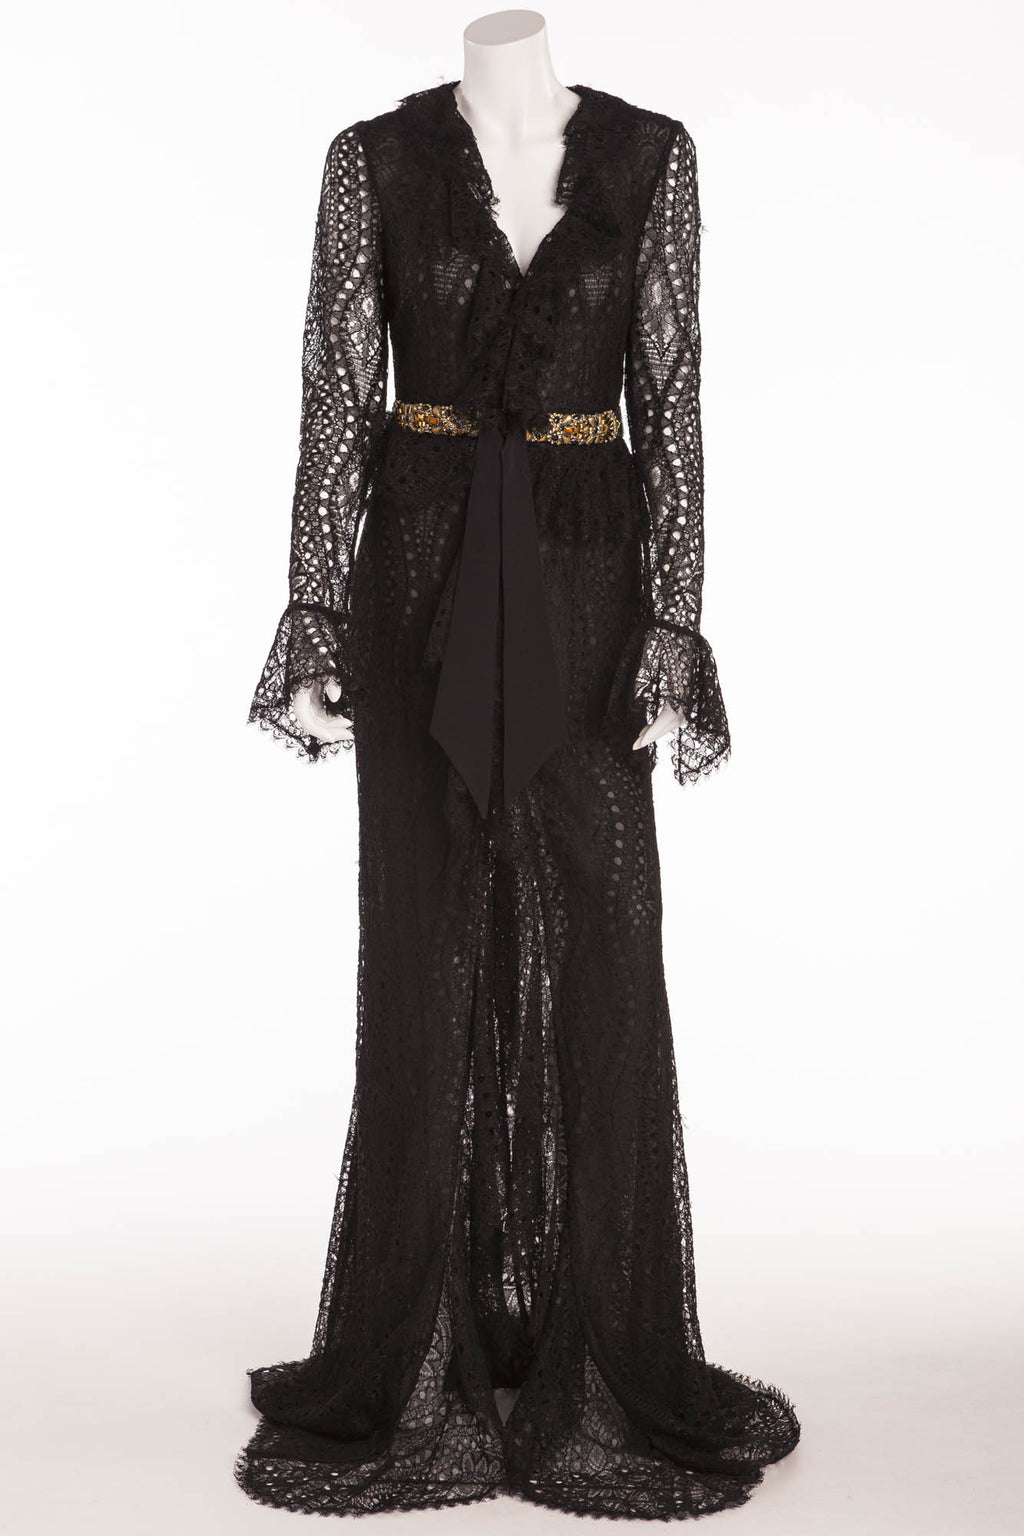 Emilio Pucci - Long Sleeve Black Lace Dress with Gold Beaded Belt - IT 42